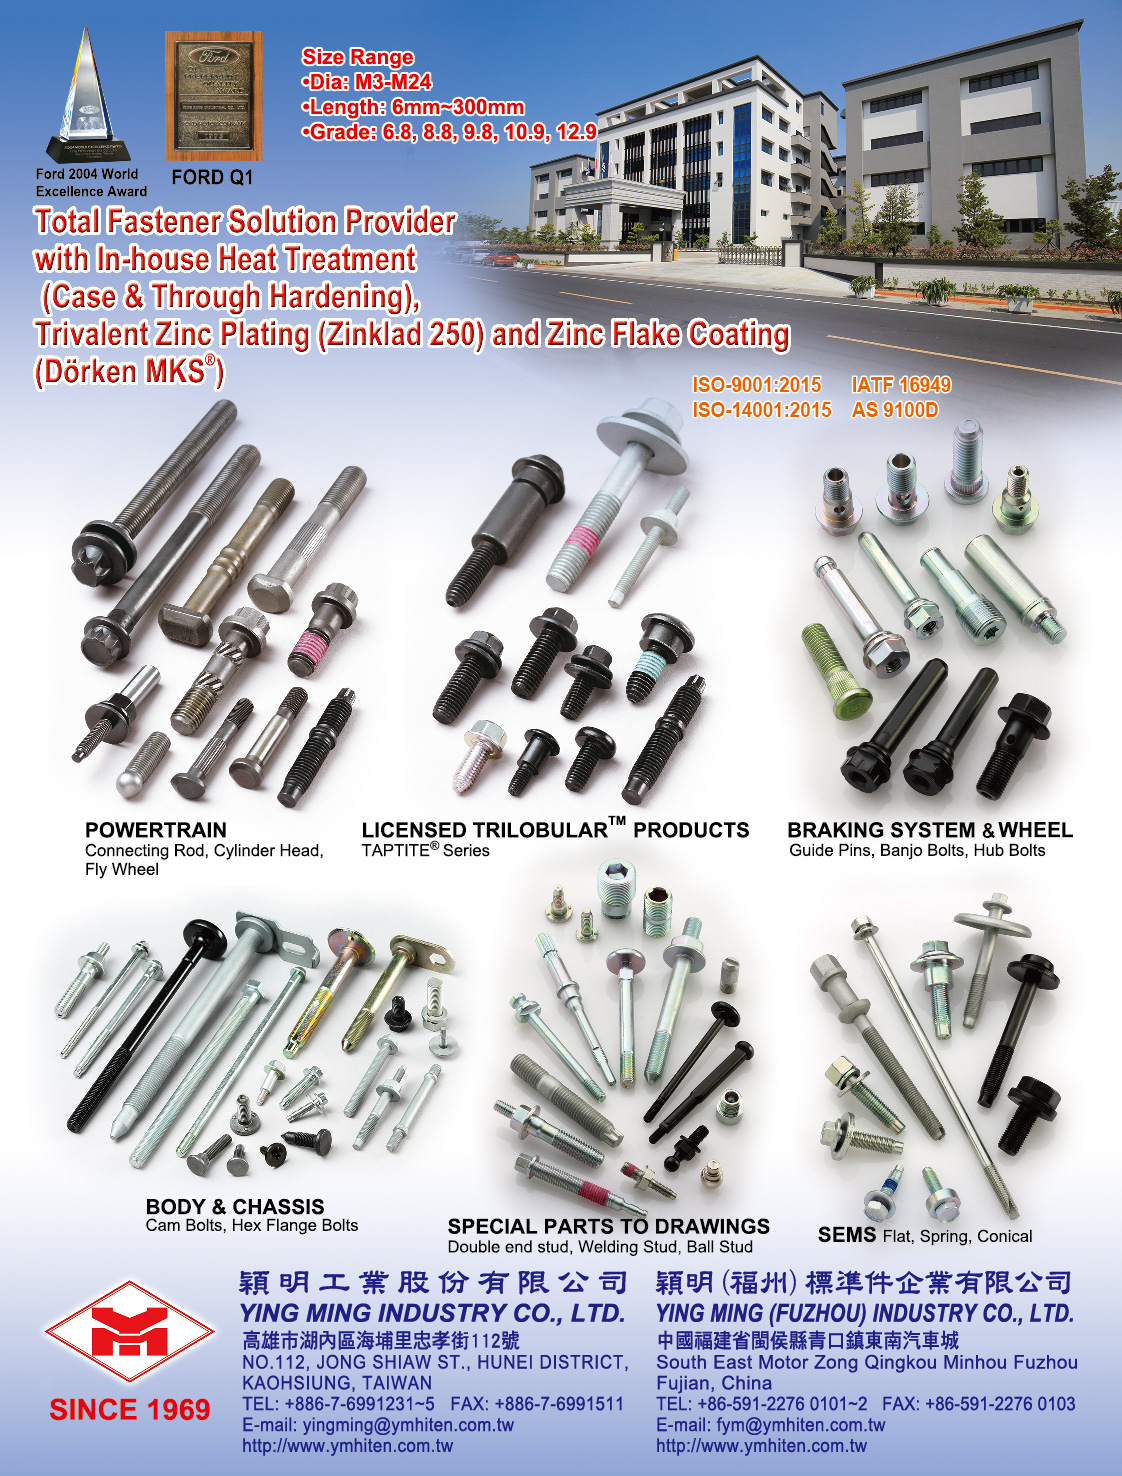 YING MING INDUSTRY CO., LTD.